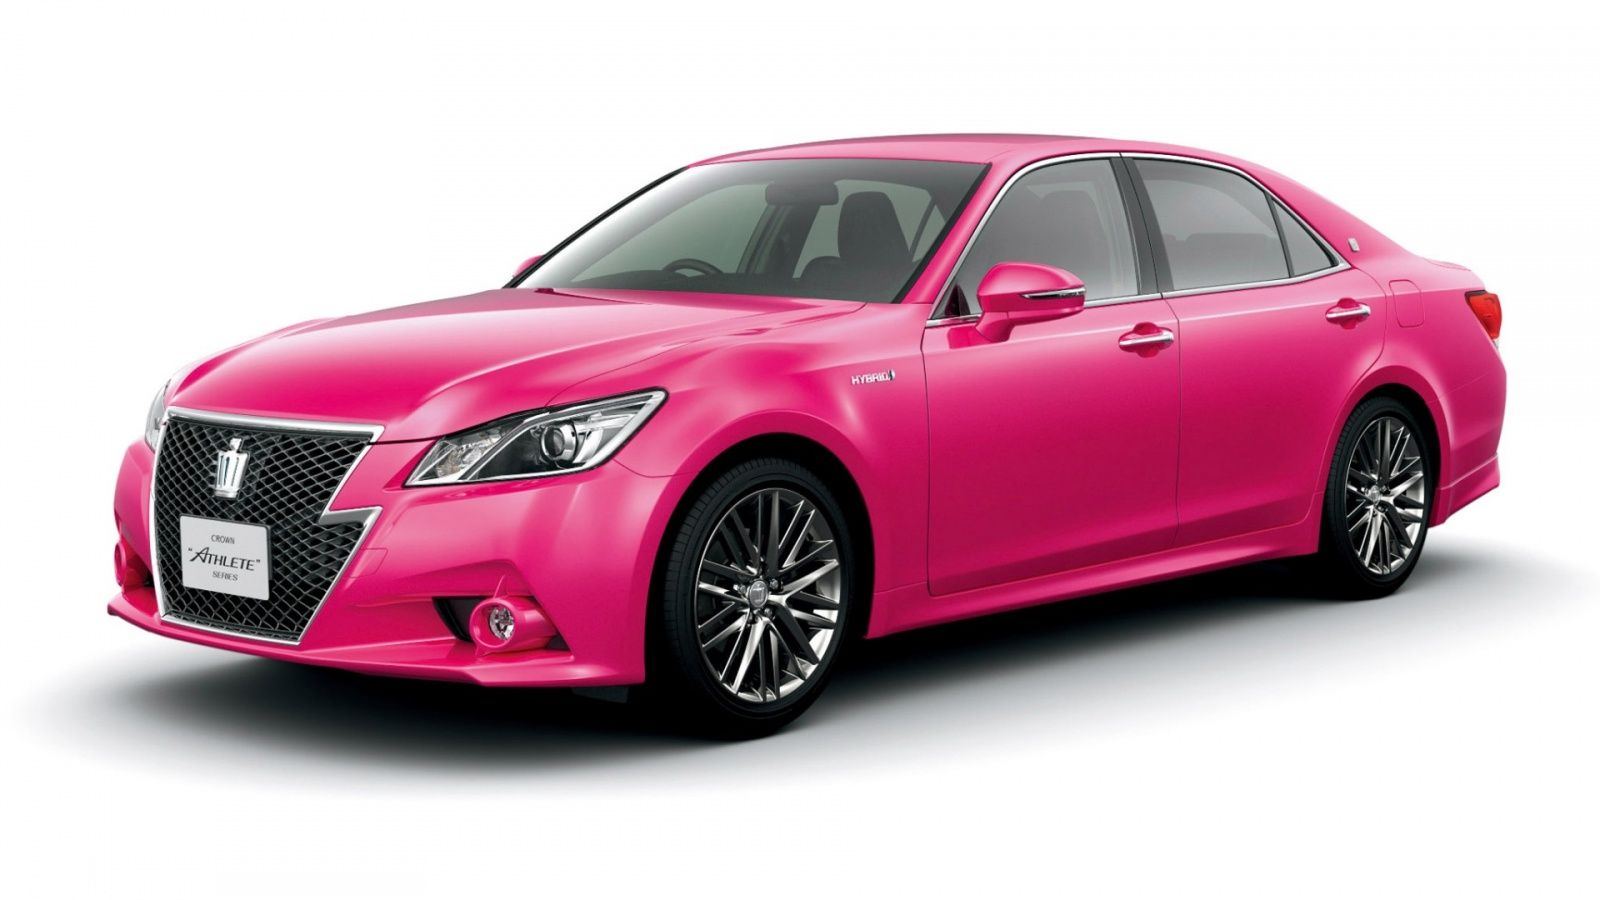 Merveilleux Toyota To Sell Hot Pink Crown In Japan